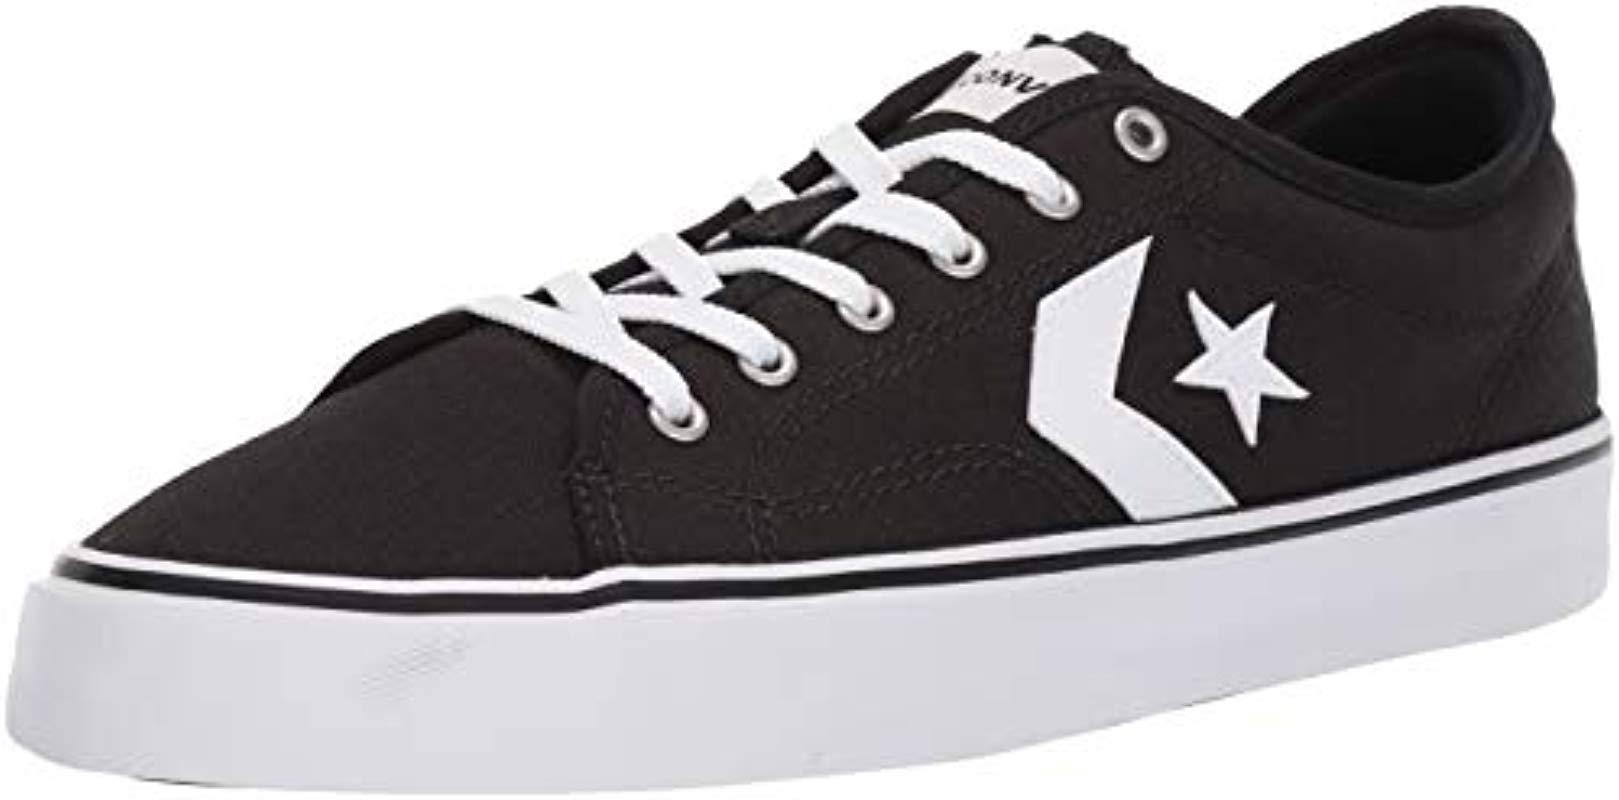 Converse Canvas Star Replay Low Top